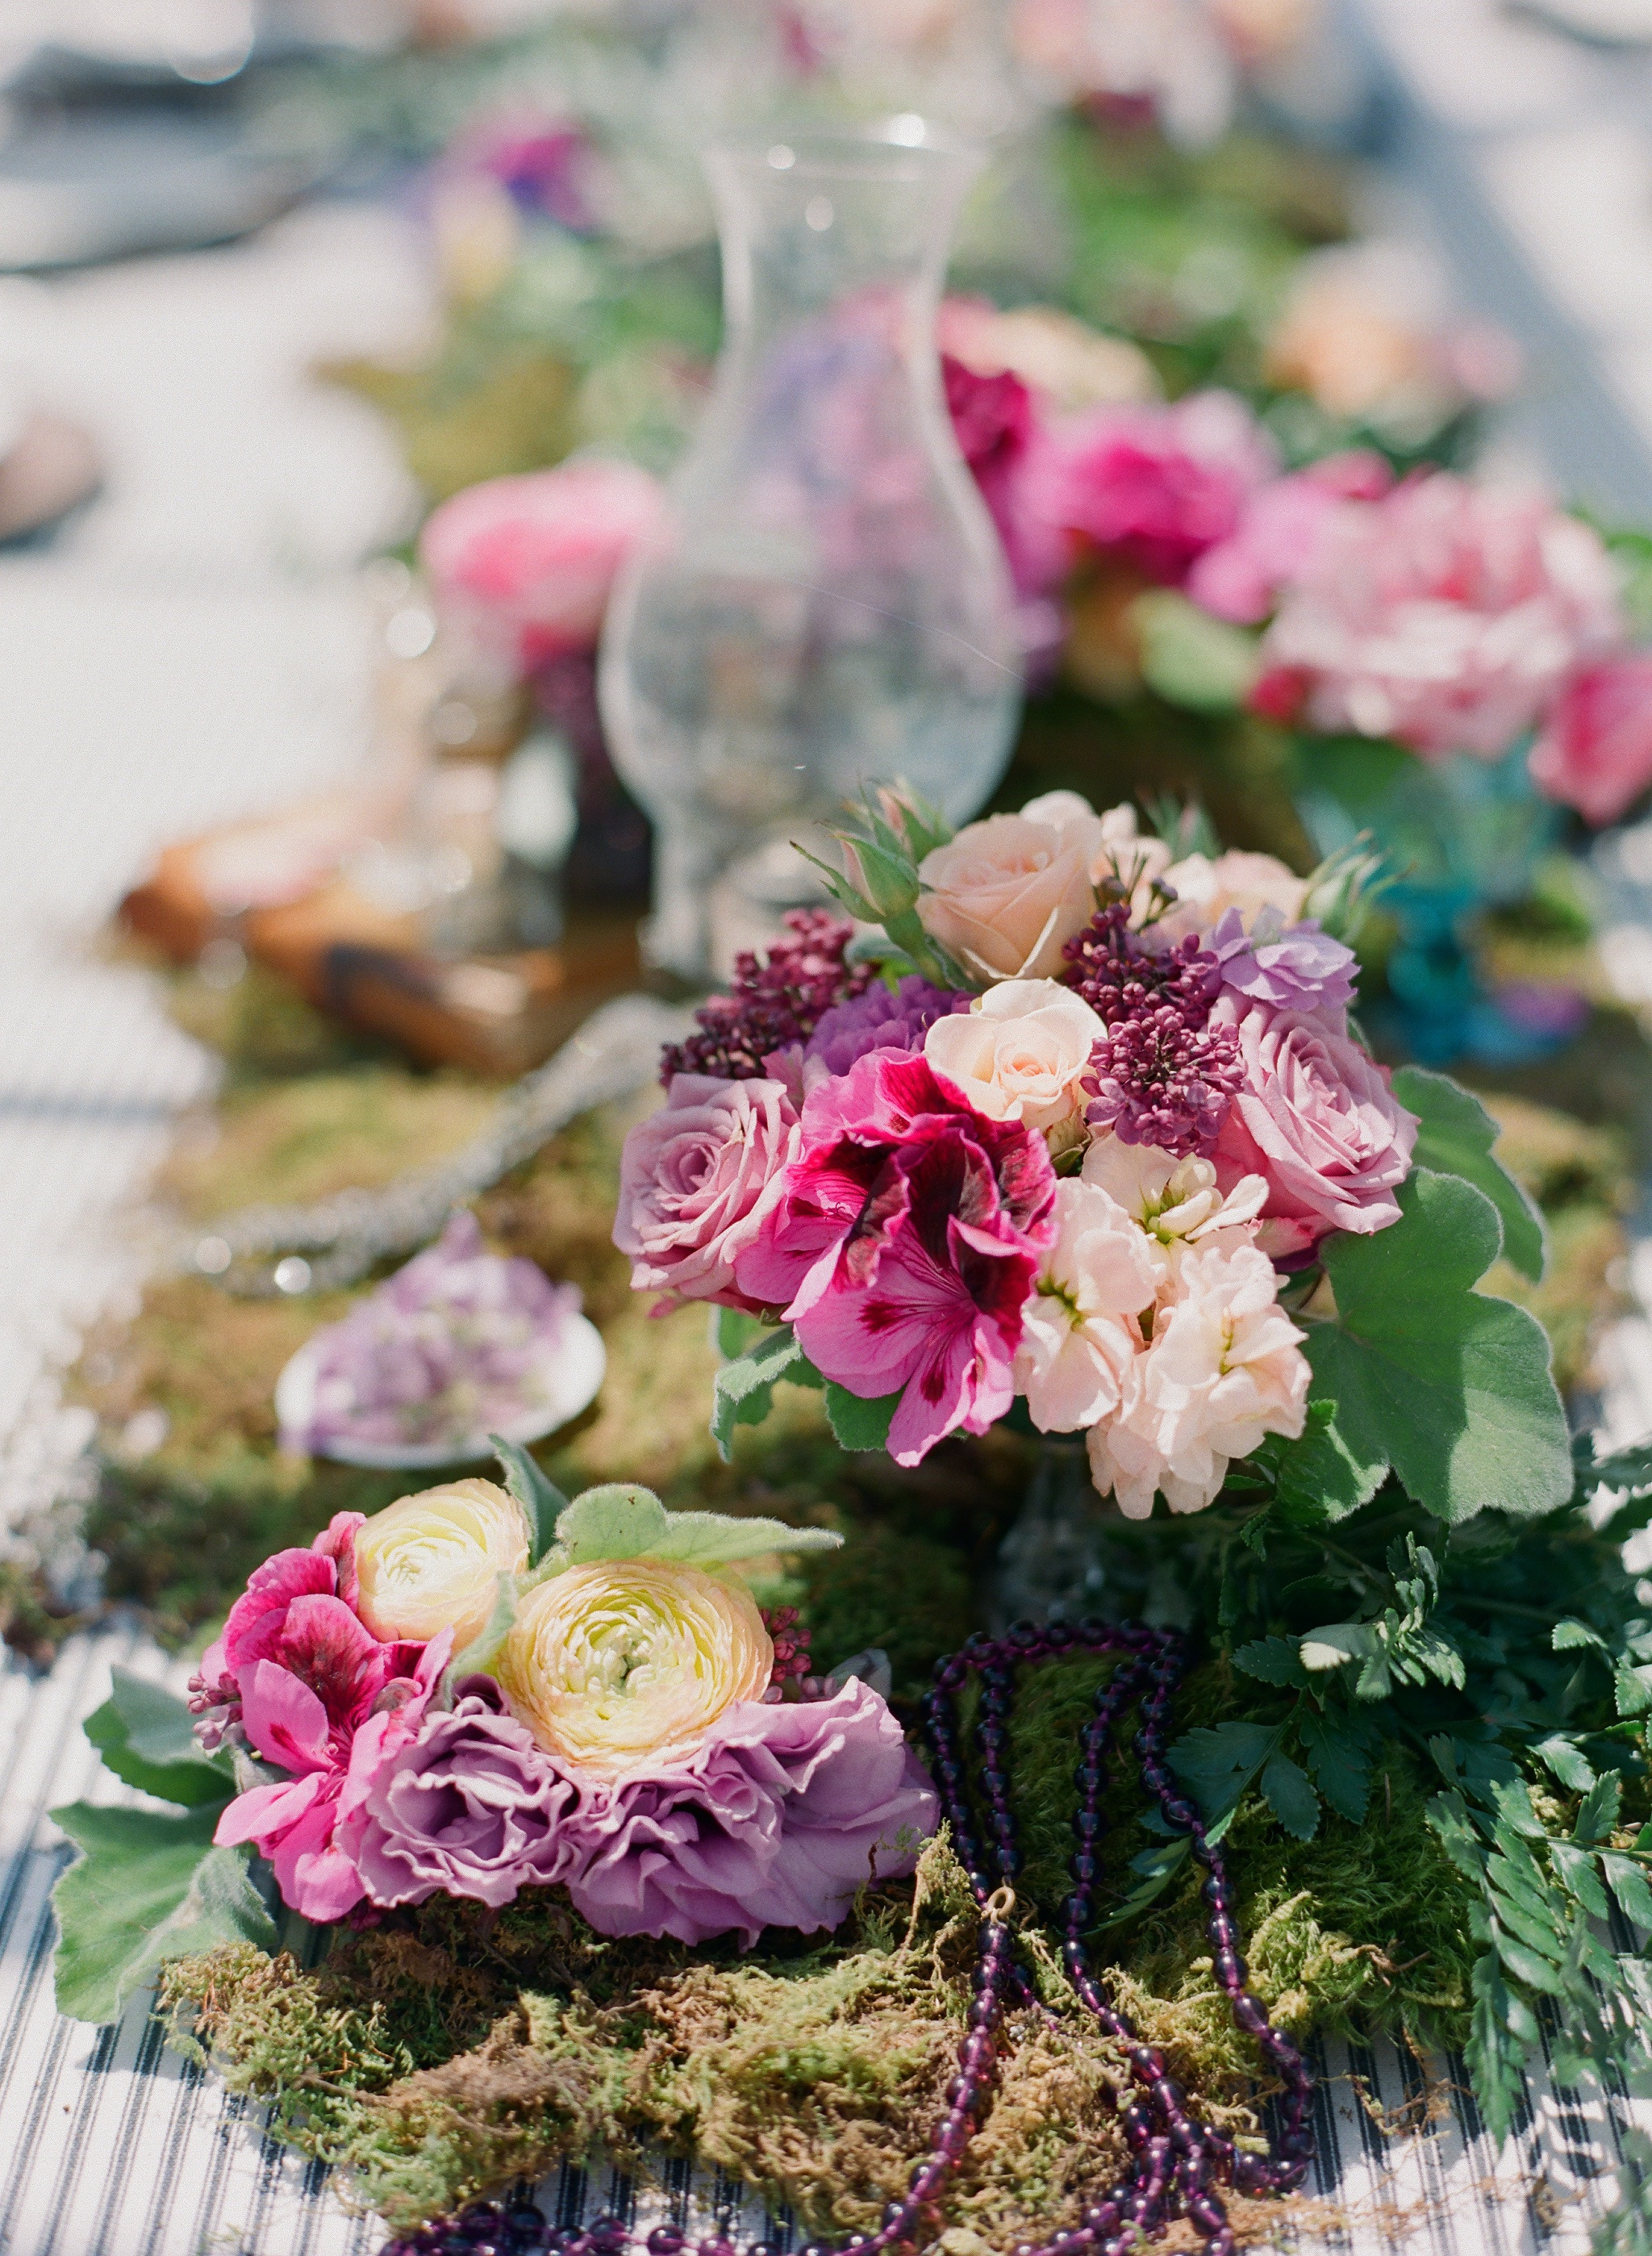 Styled-wedding-beaux-arts-tea-time-monique-lhuillier-santa-barbara-chic-flowers-pink-purple-moss-278.original